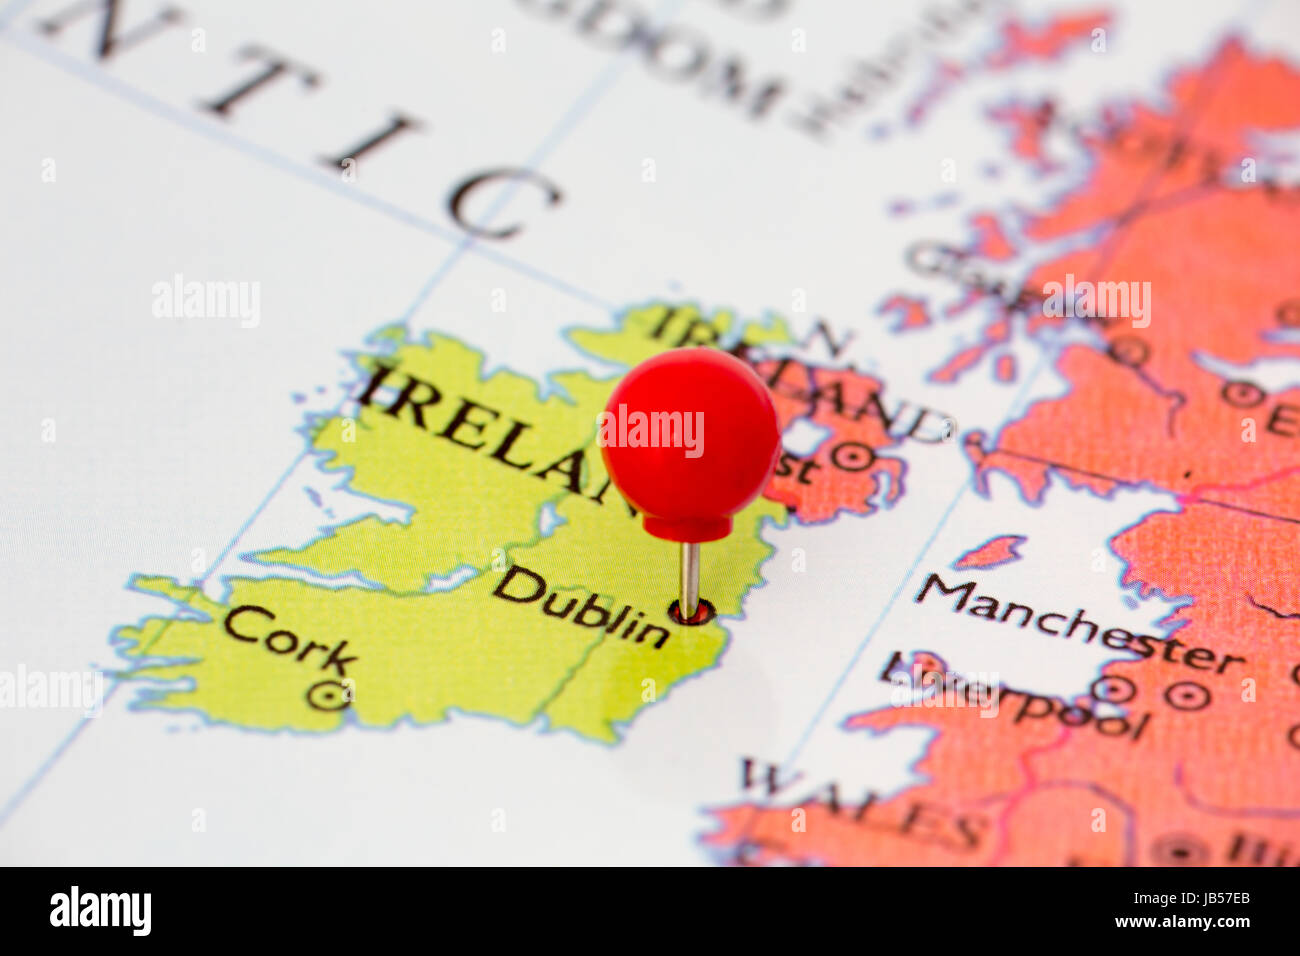 Map Of Ireland With Major Cities.Round Red Thumb Tack Pinched Through City Of Dublin On Ireland Map